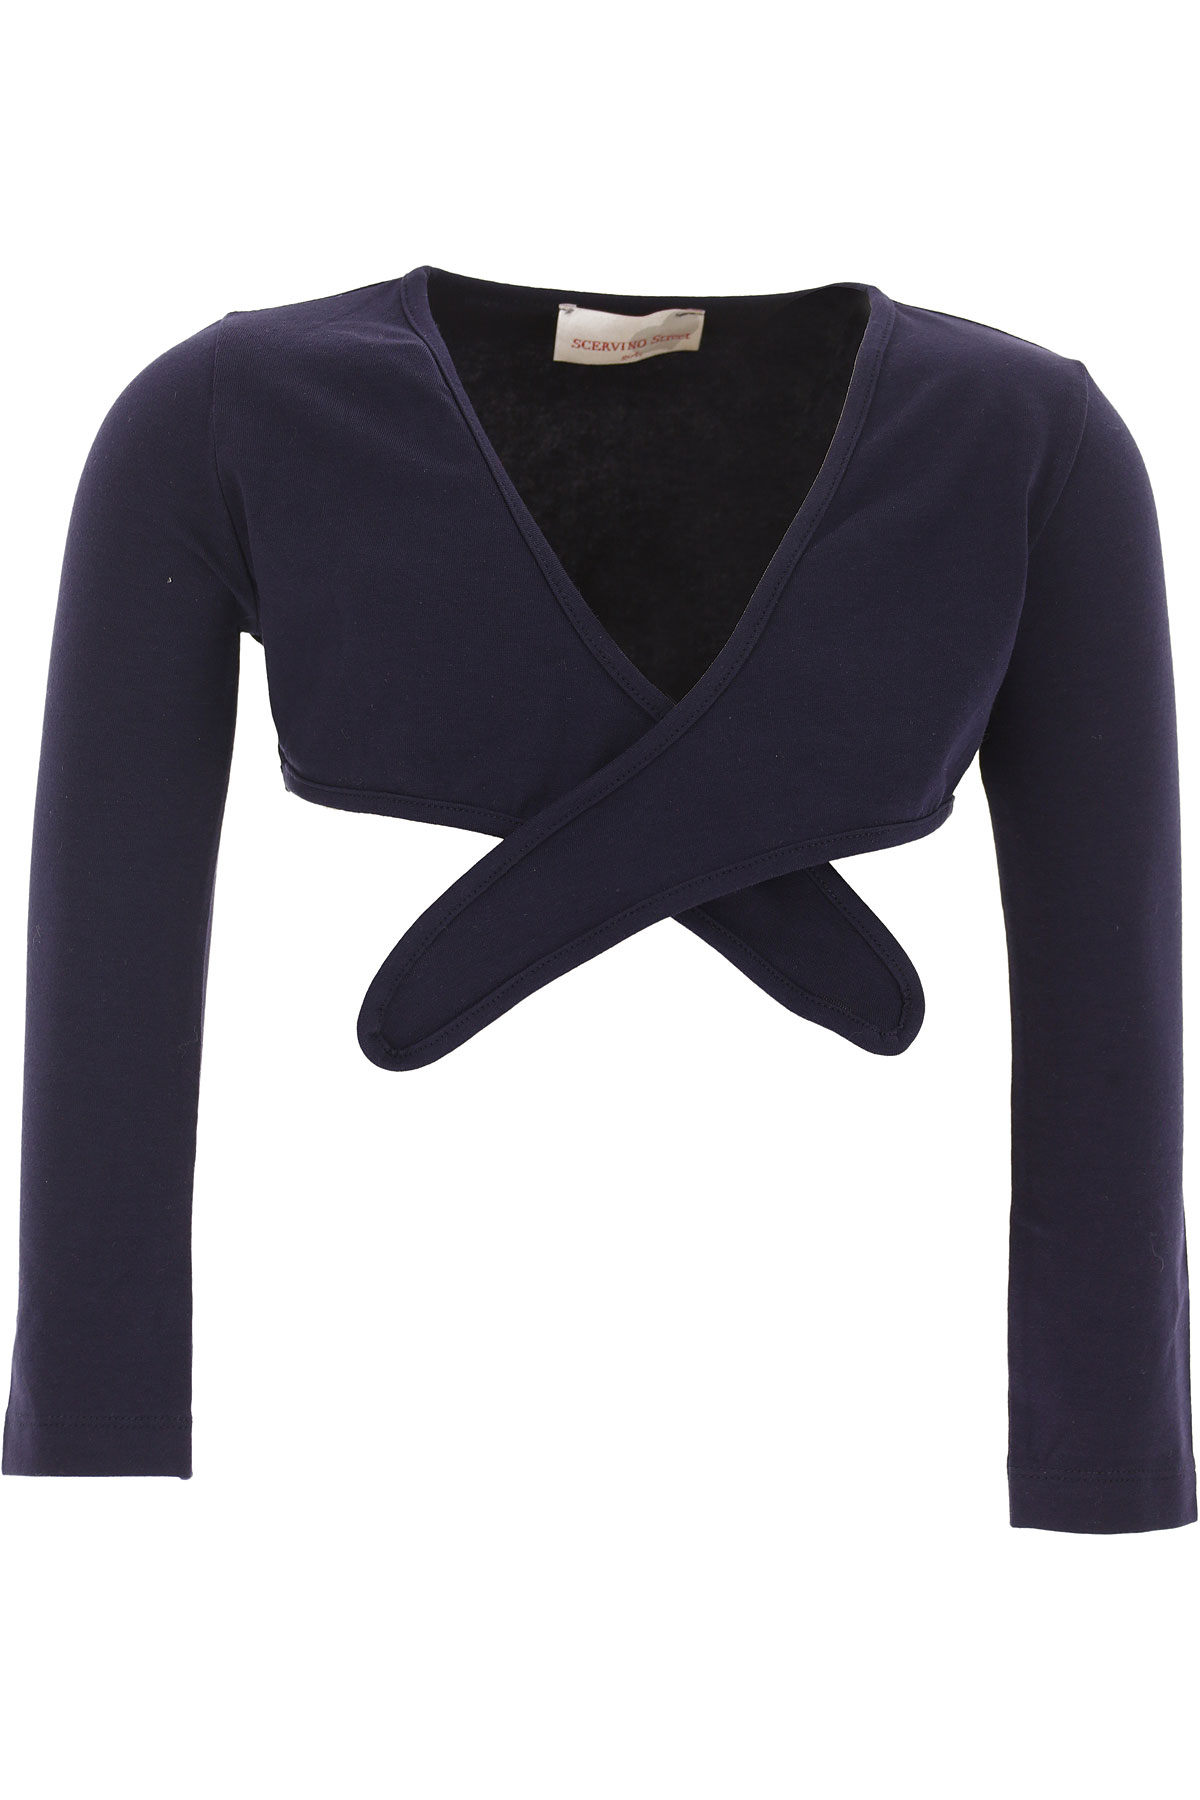 Ermanno Scervino Kids Sweaters for Girls On Sale in Outlet, Blue, Cotton, 2019, 2Y 4Y